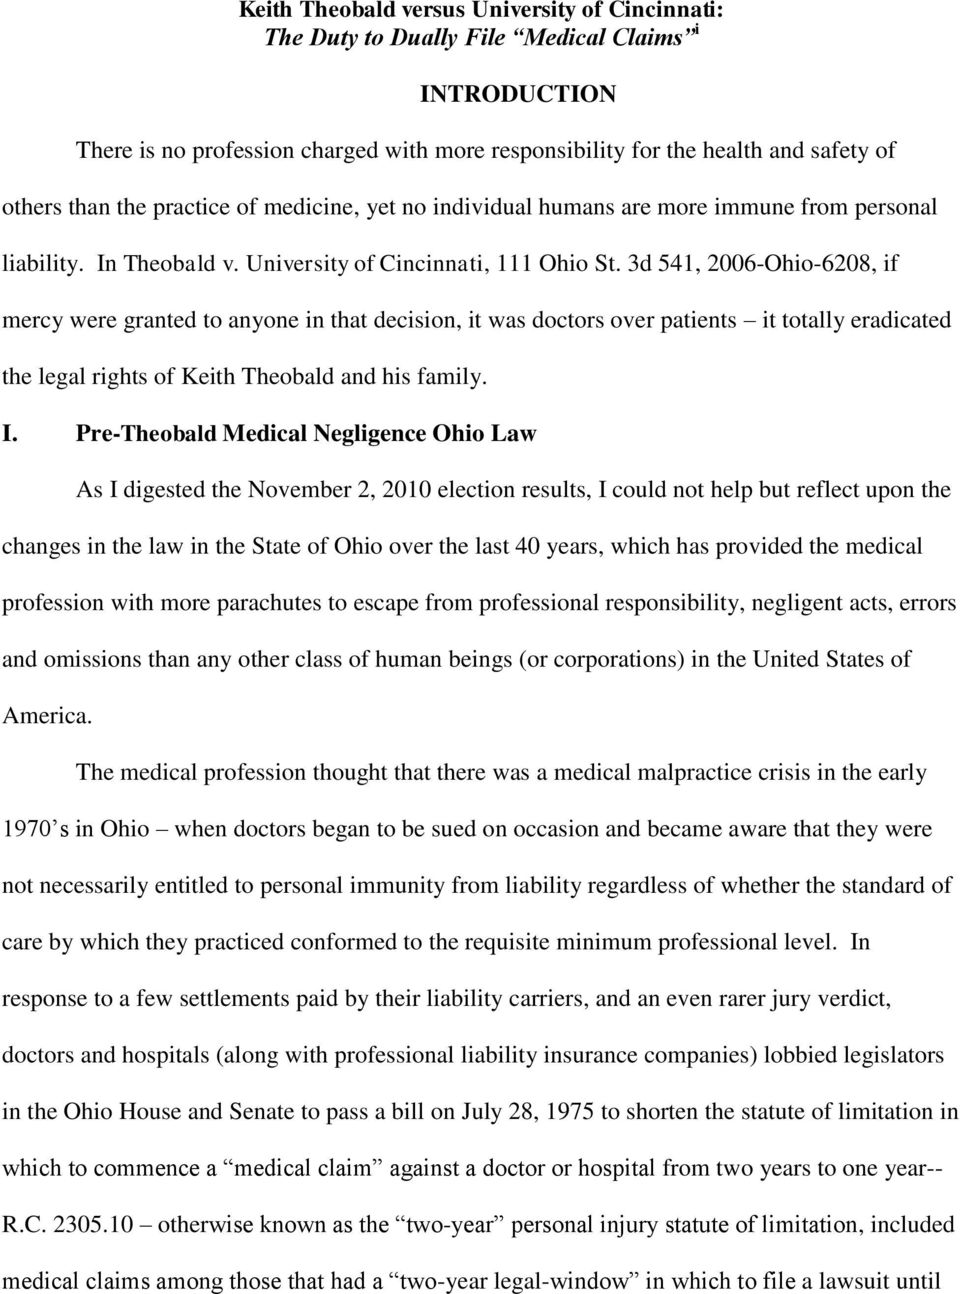 3d 541, 2006-Ohio-6208, if mercy were granted to anyone in that decision, it was doctors over patients it totally eradicated the legal rights of Keith Theobald and his family. I.